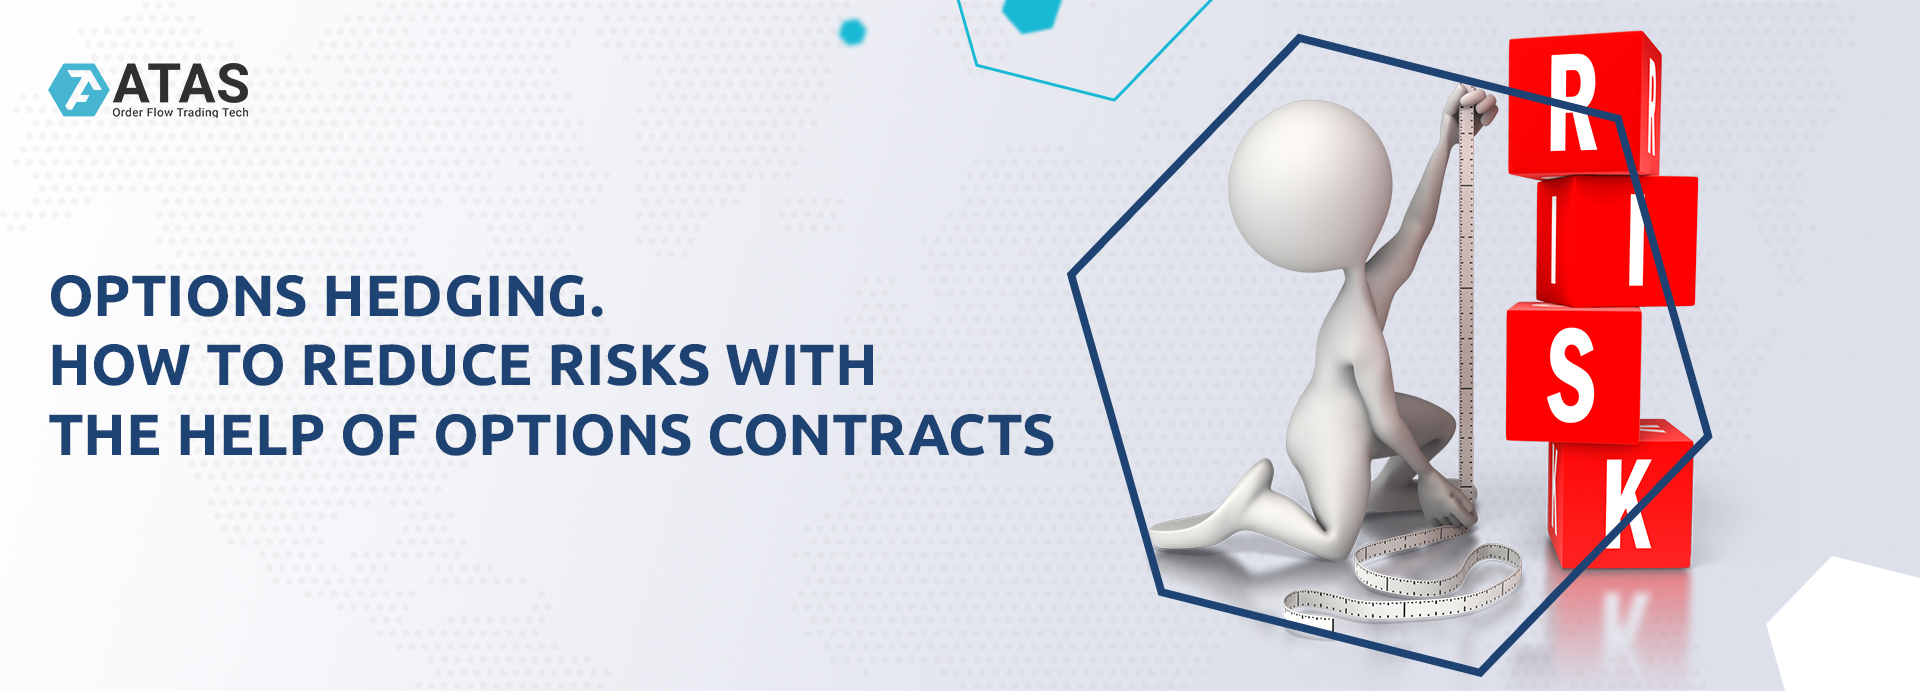 Options hedging. How to reduce risks with the help of options contracts